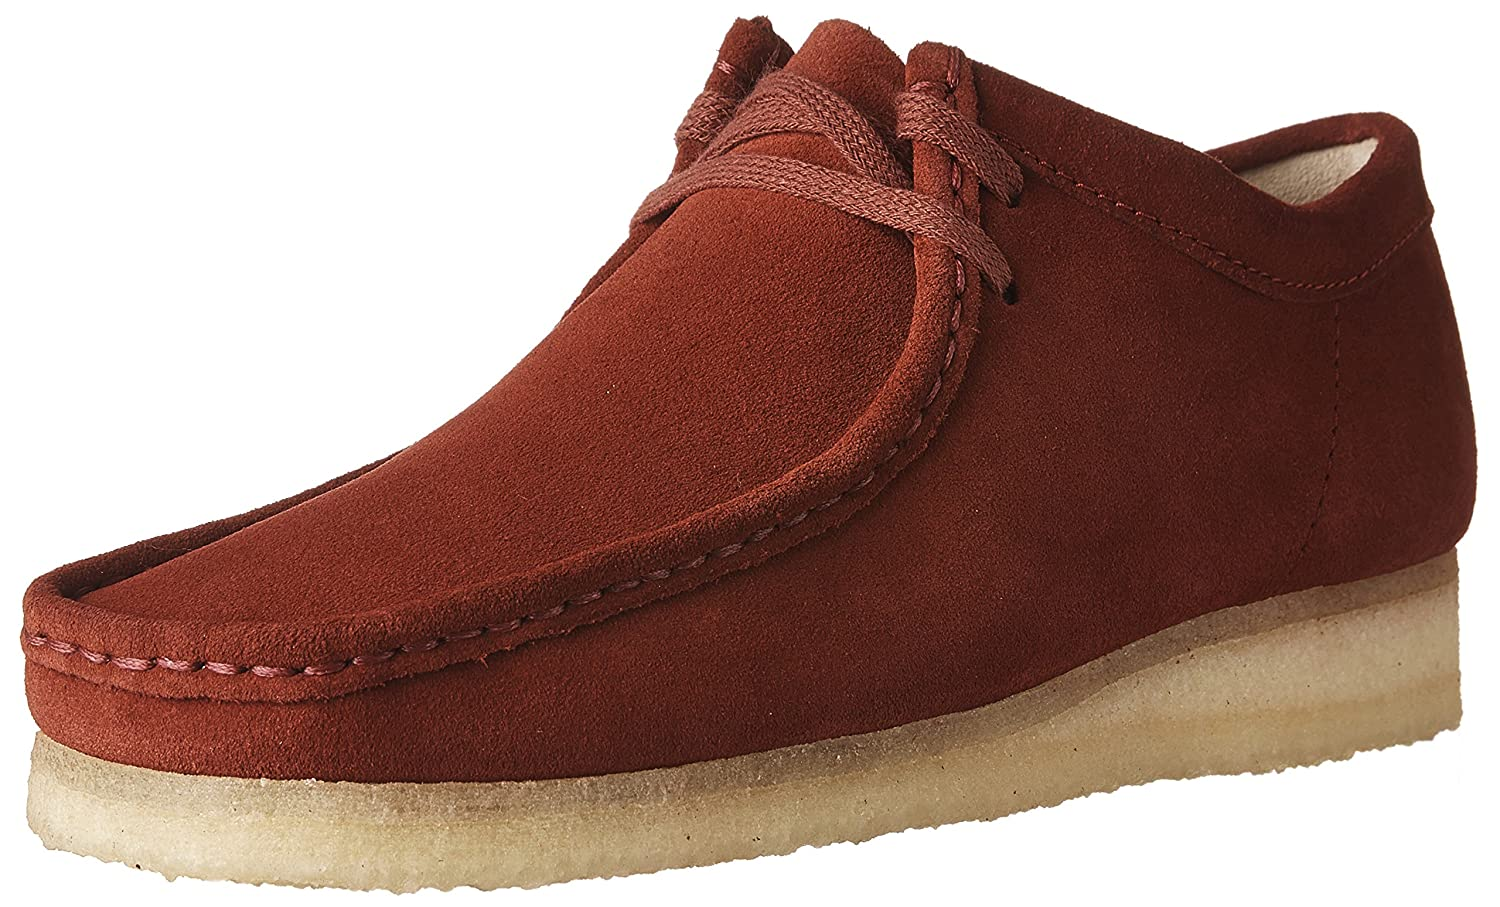 CLARKS Men's Wallabee Shoe B01N7QXZ5M 13 D(M) US|Red Suede